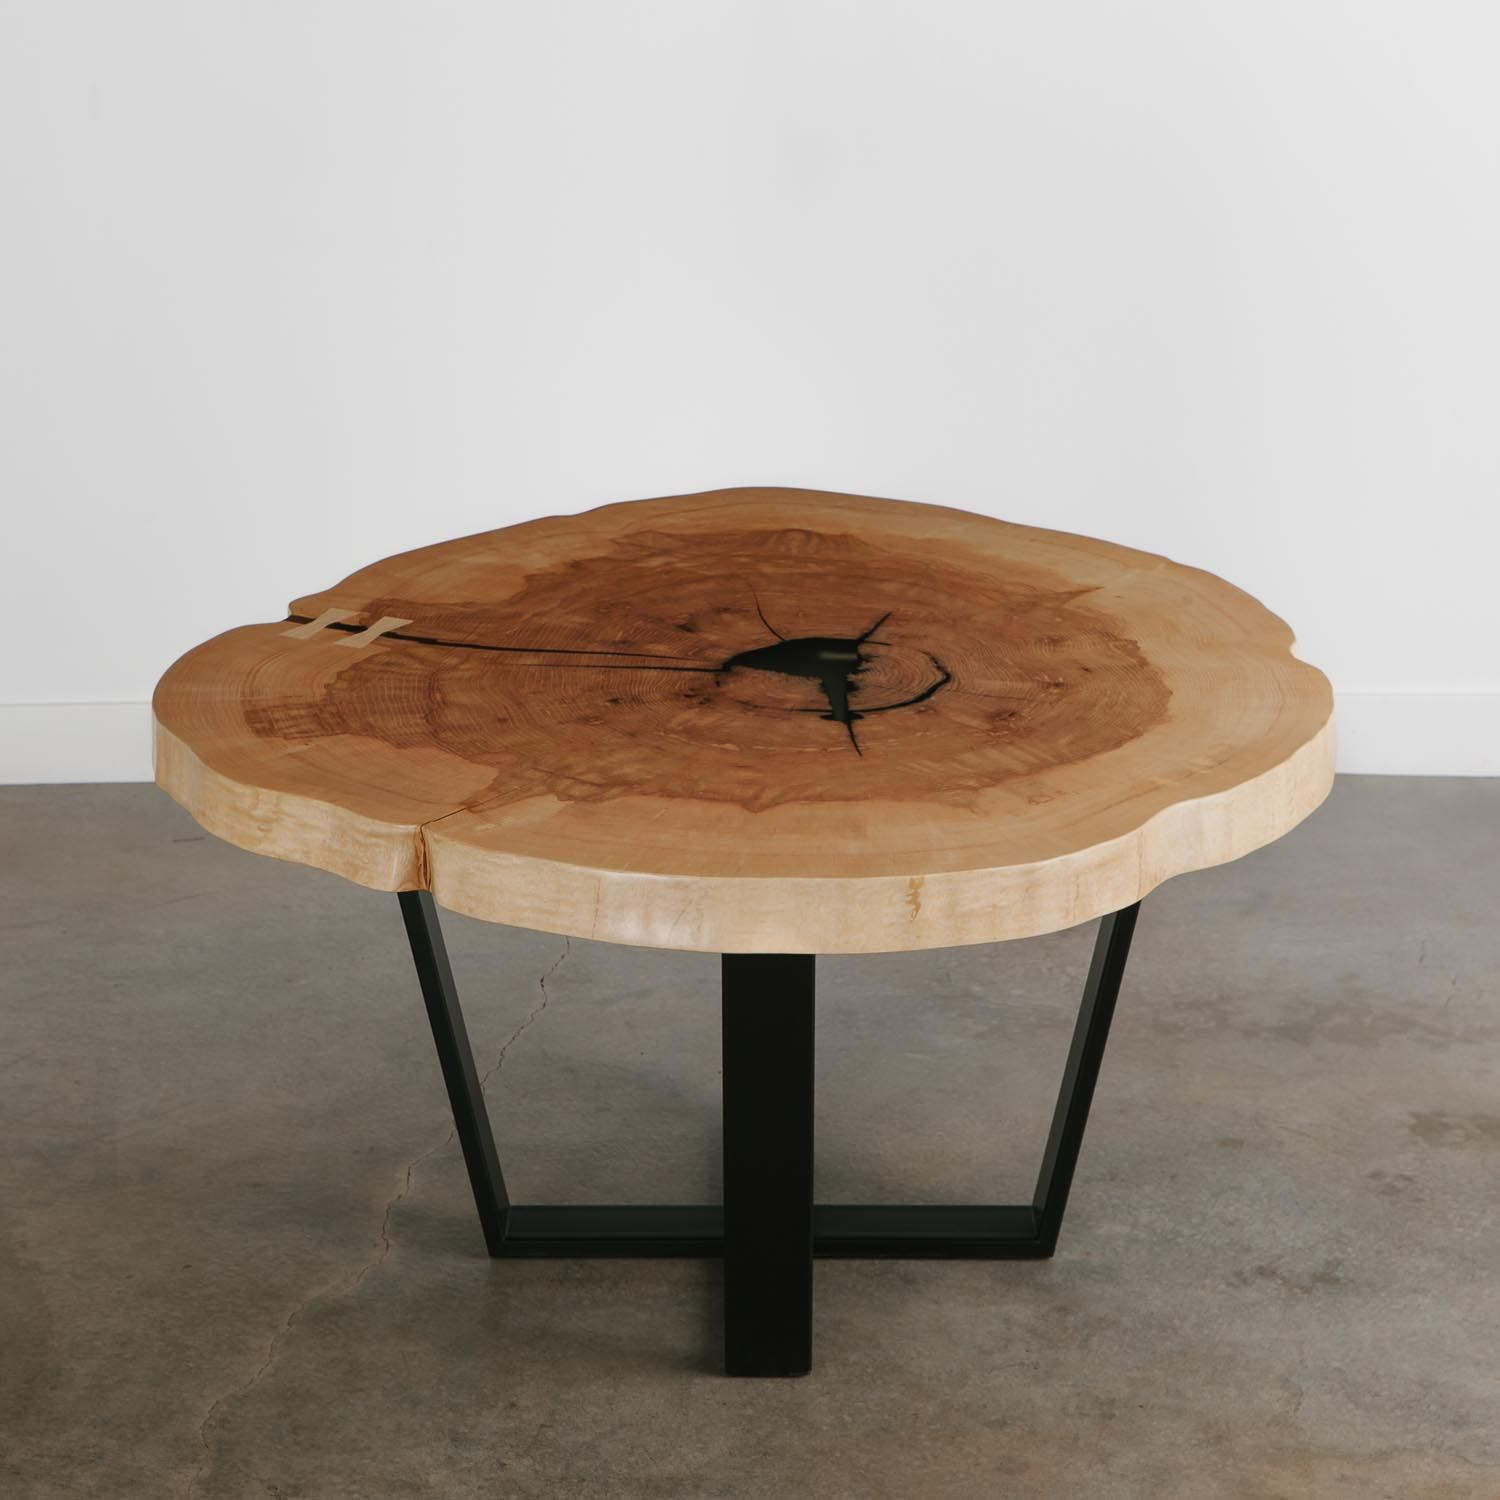 No 182 Ash Crosscut Slab Modern Live Edge Design Resin Filled Voids Butterfly Keys Silky Smooth Fin In 2020 Slab Dining Tables Wood Slab Table Wood Slab Dining Table